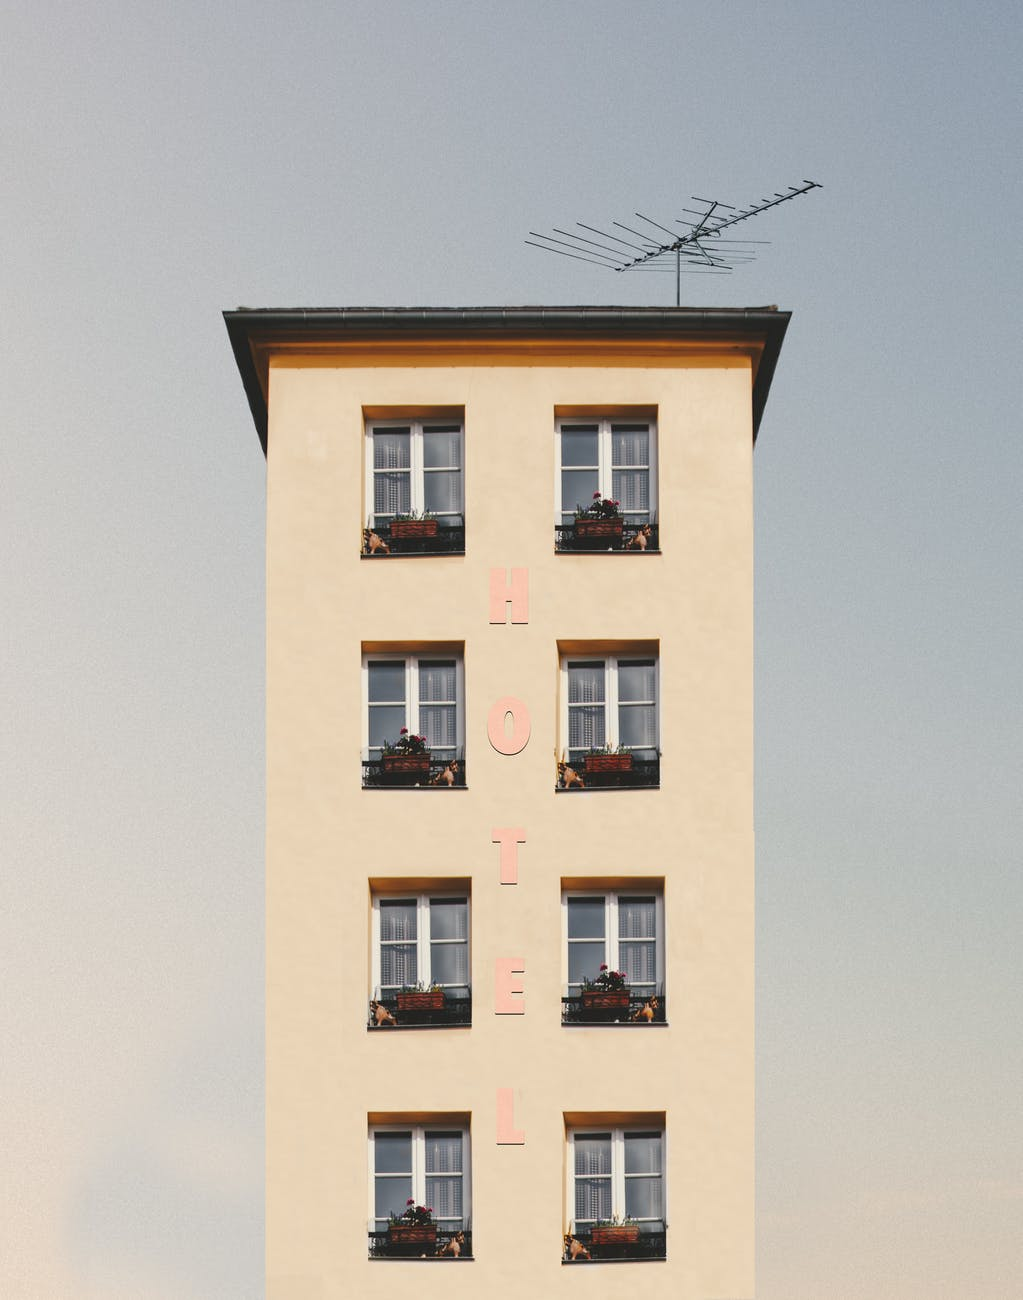 low angle photography of beige concrete building